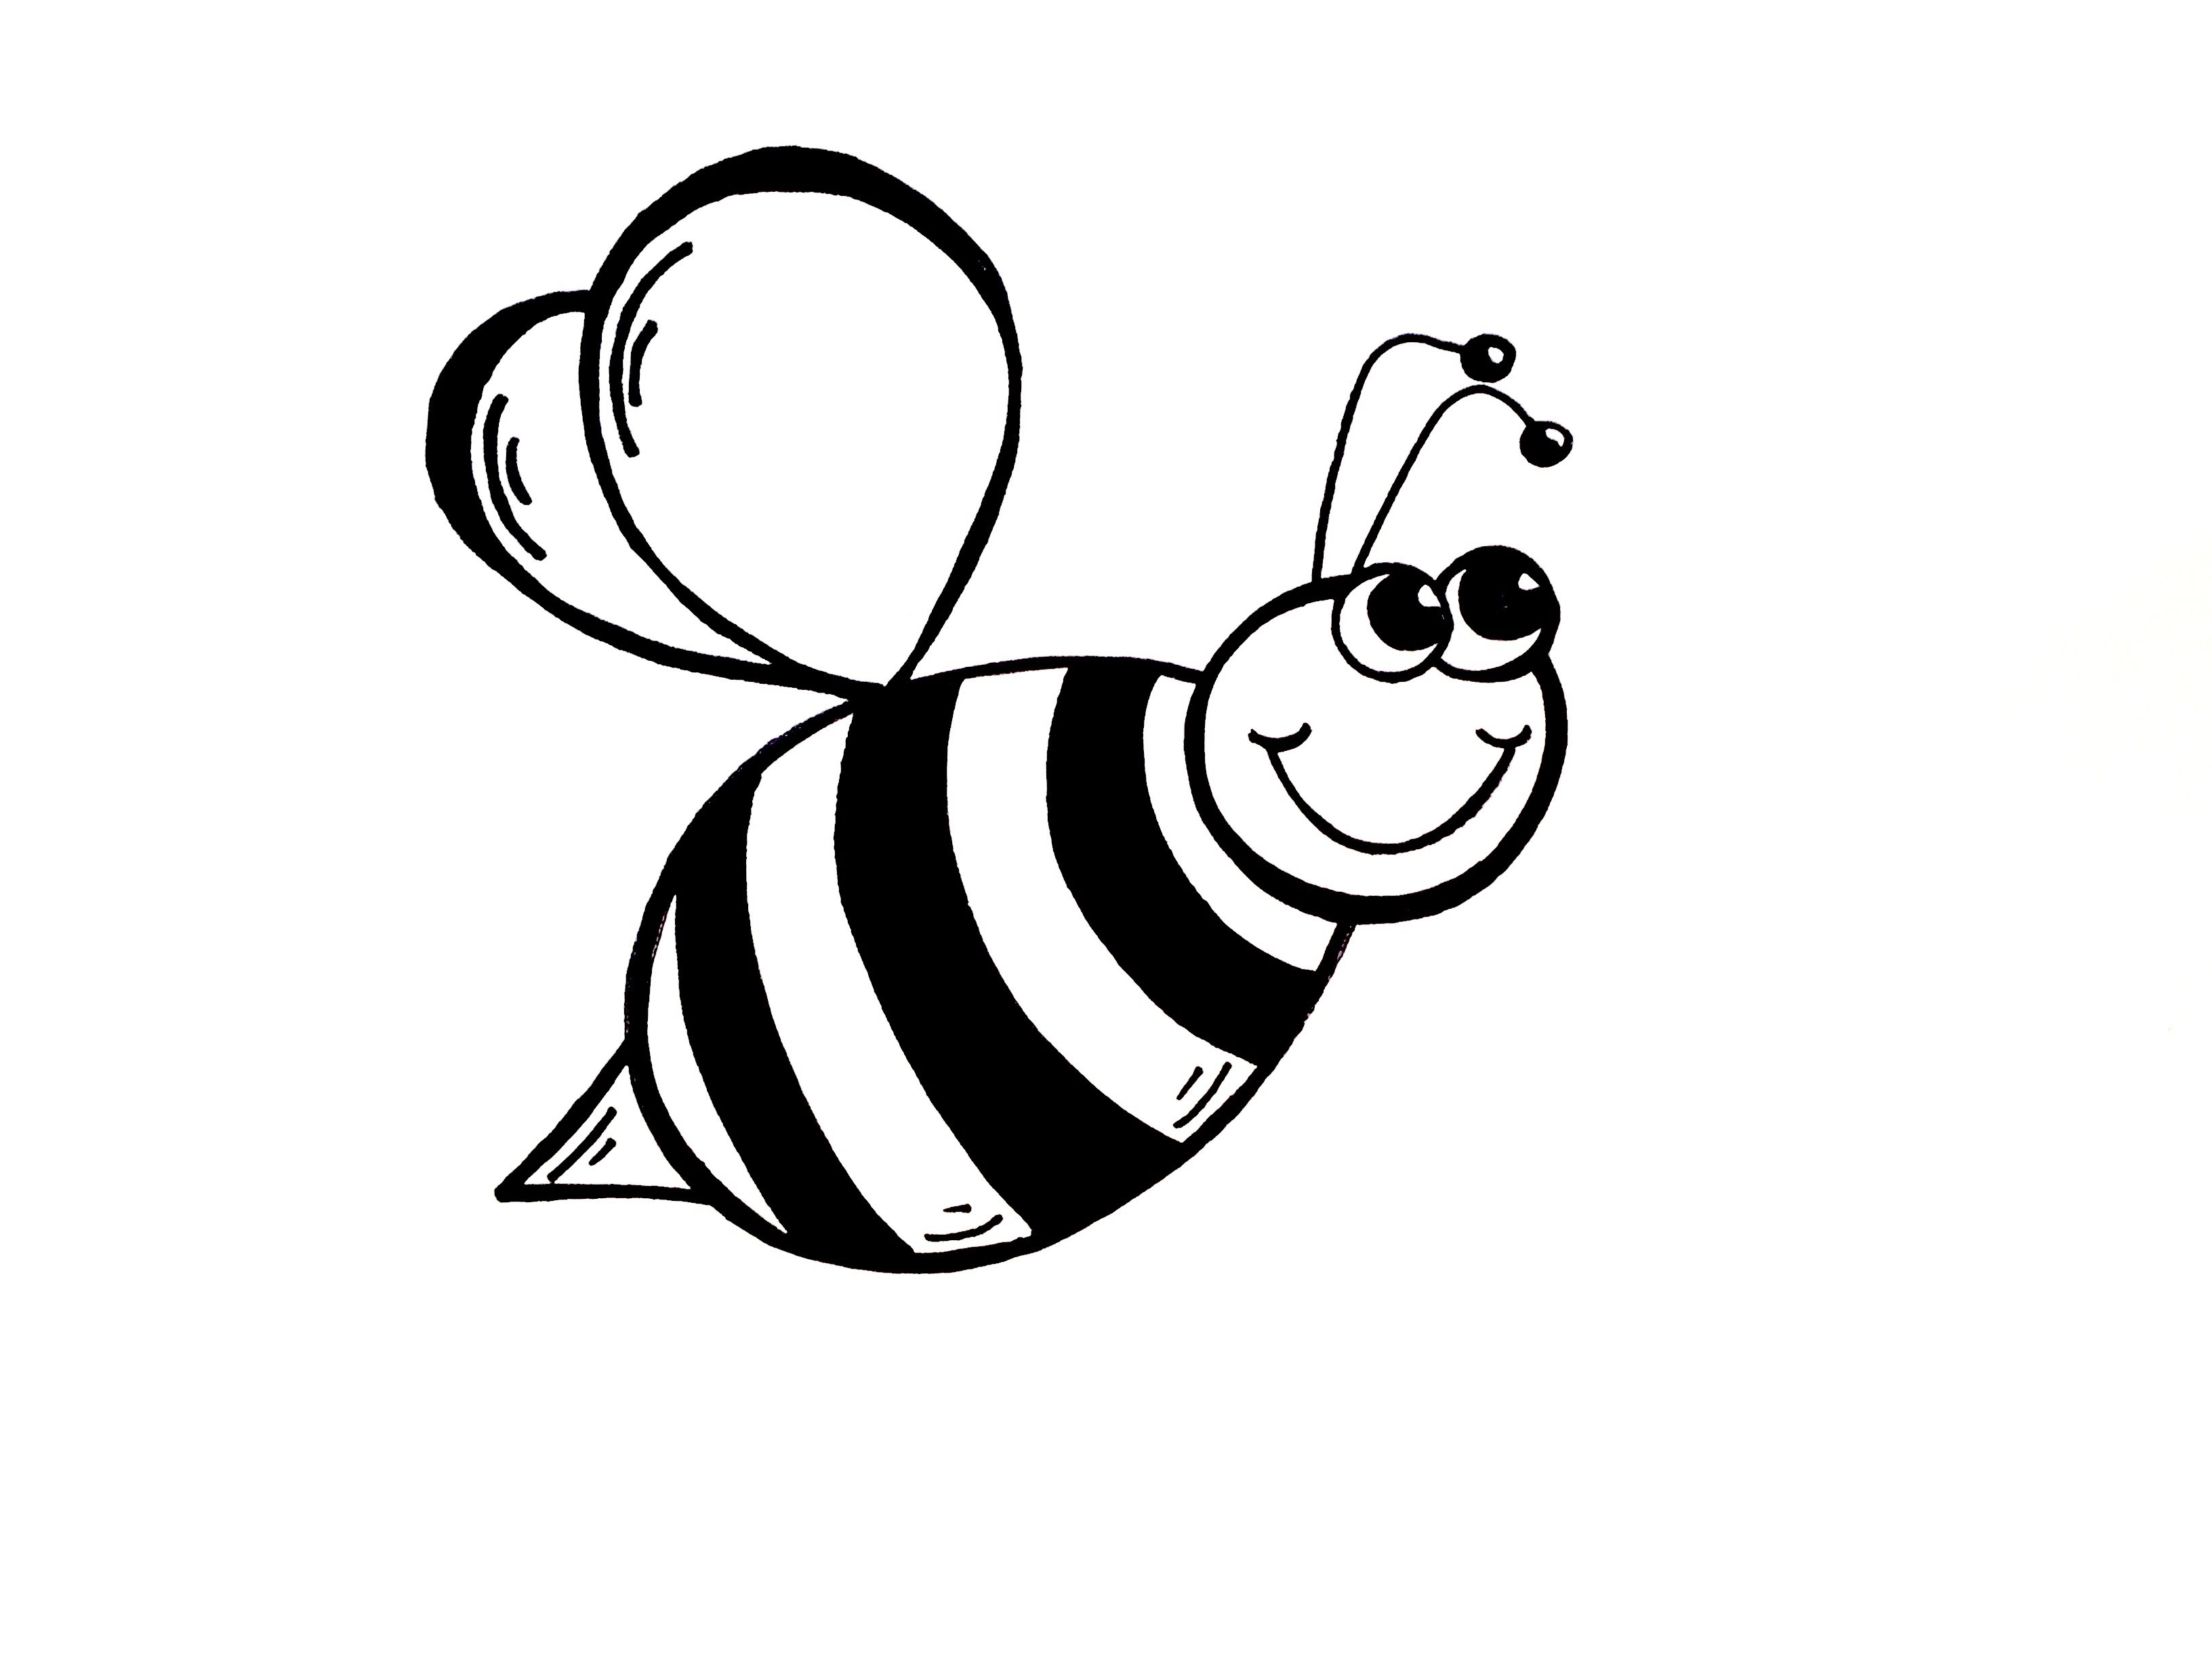 Bees clipart black and white. Simple bumble bee drawing